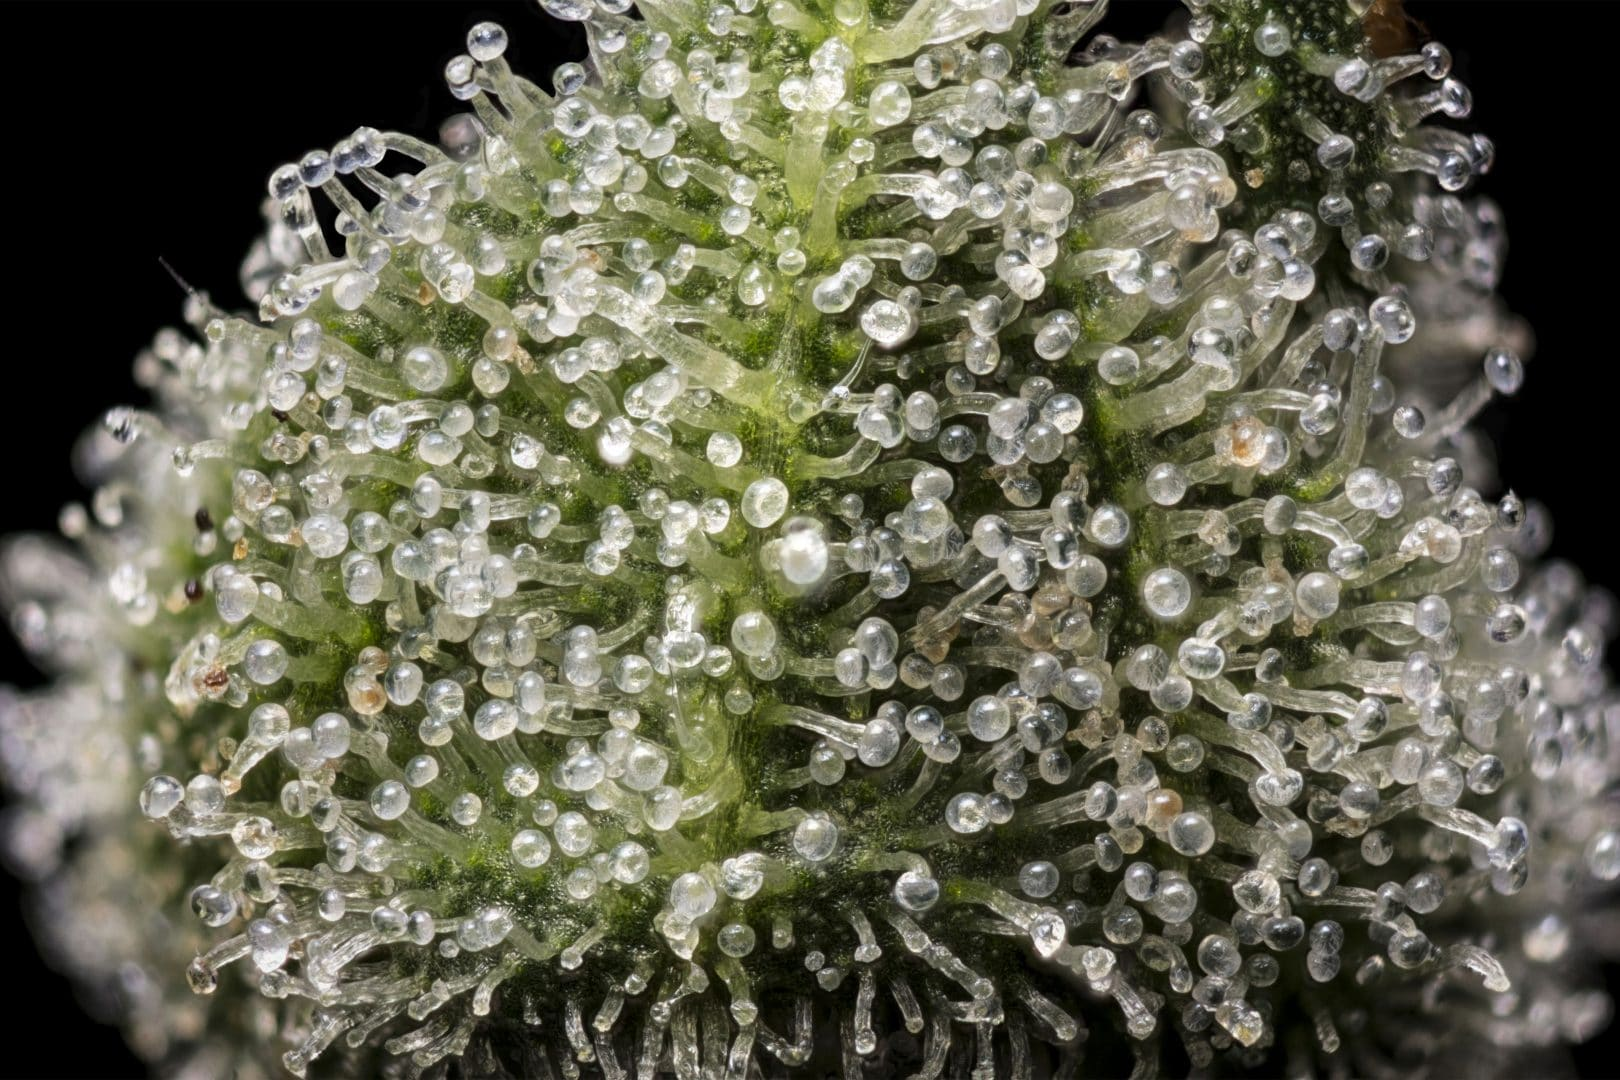 Trichomes on a Jack Herer plant.